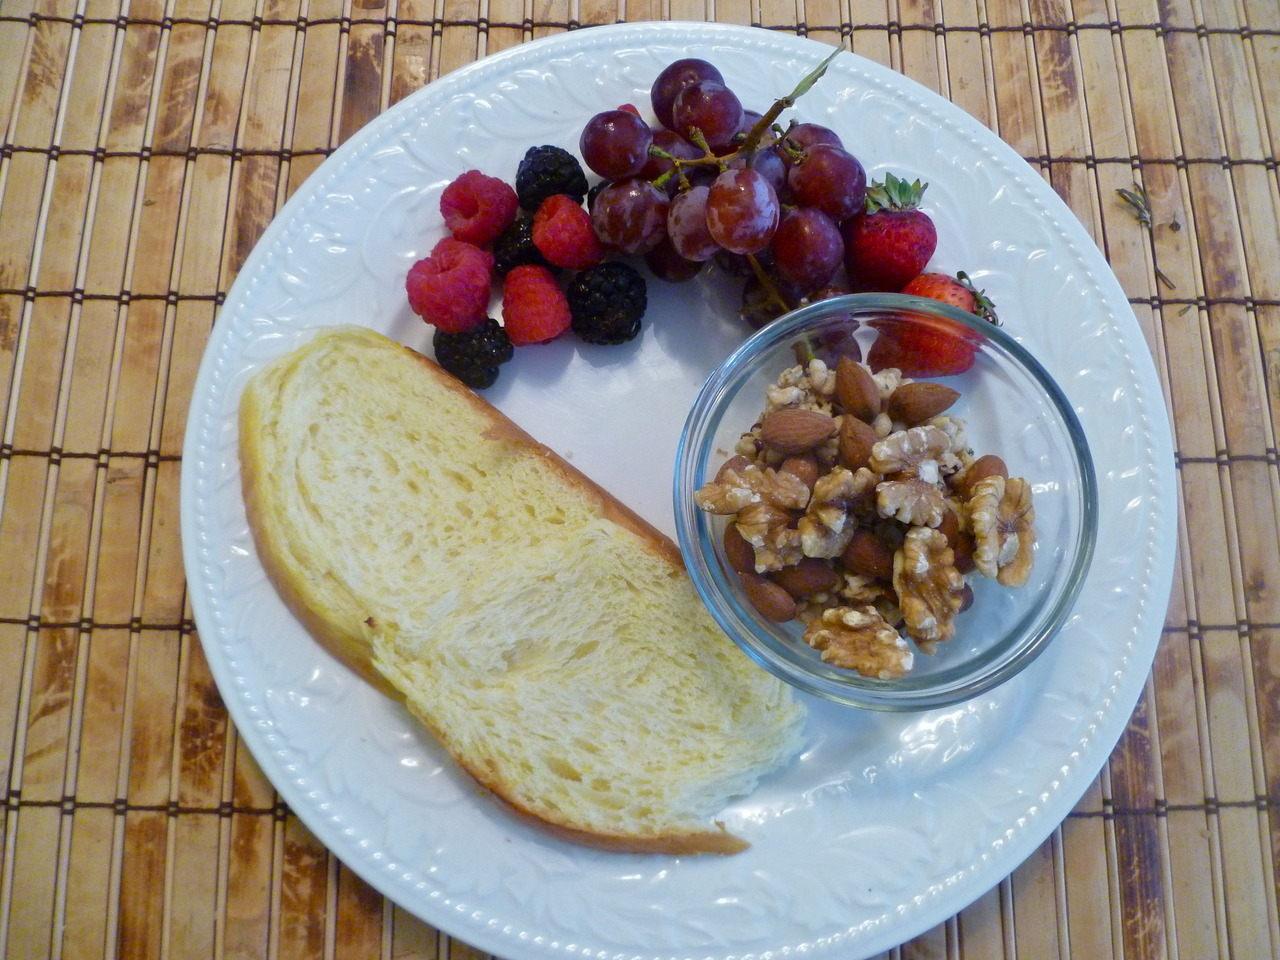 morning meals: challah toast with assorted fruits and hemp granola, walnuts and almonds